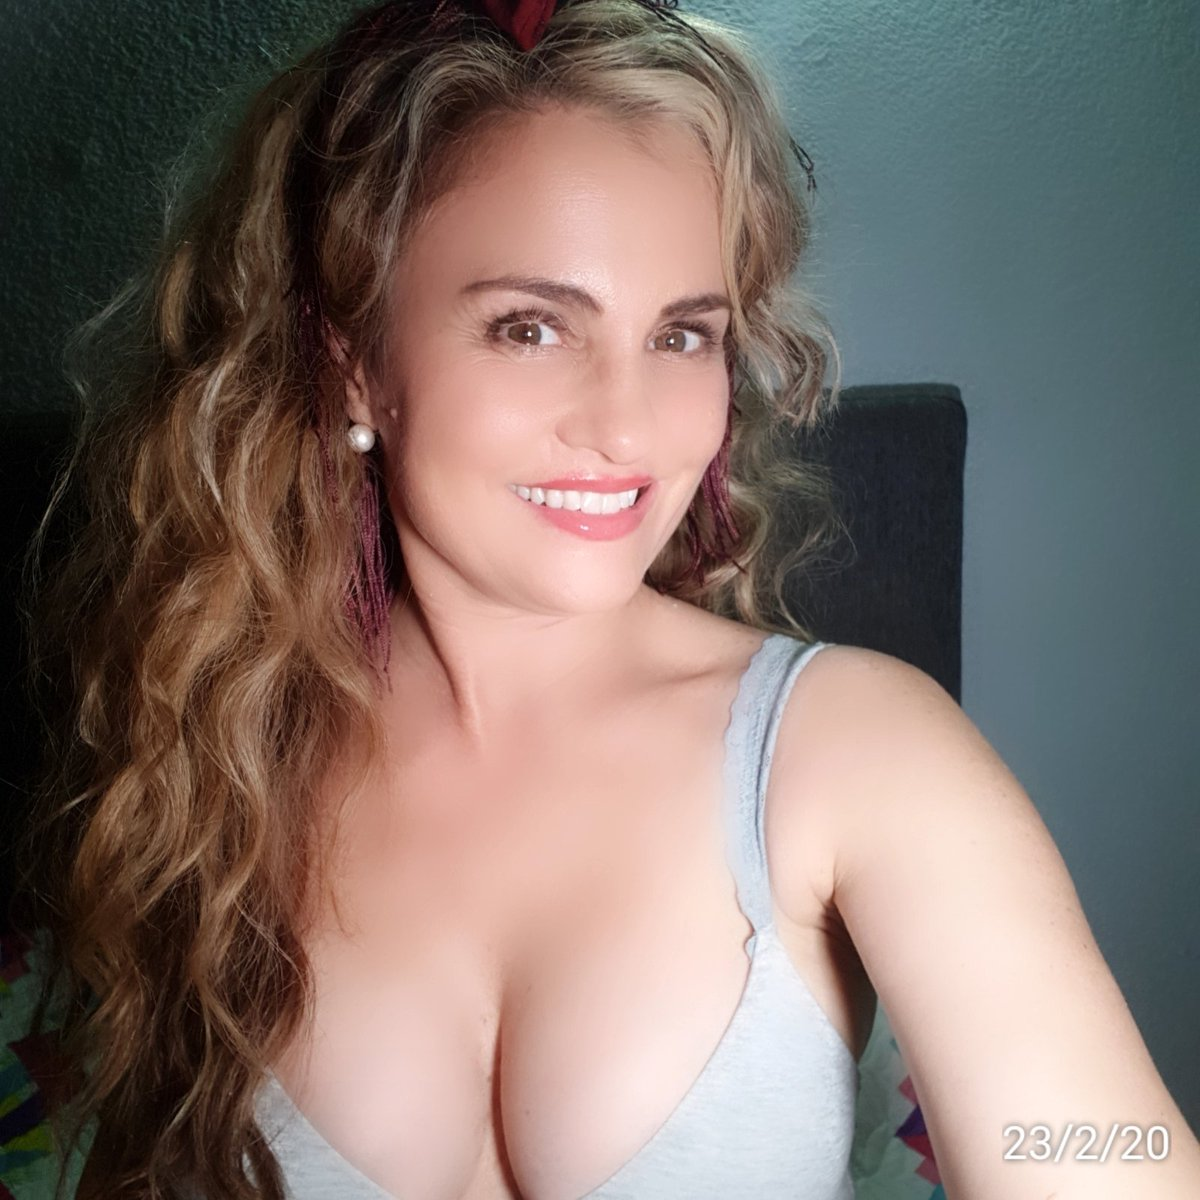 A gift for you...#MotivationMonday #24Febrero #Feliz #auracristinageithner#beautiful #lapotradelabanda #Colombia #happy #vscocam #girl #instagramers #iger #love #loveyouall #actresslife #model #loveislove #smile #follow #2020pic.twitter.com/EcWMF1cRey